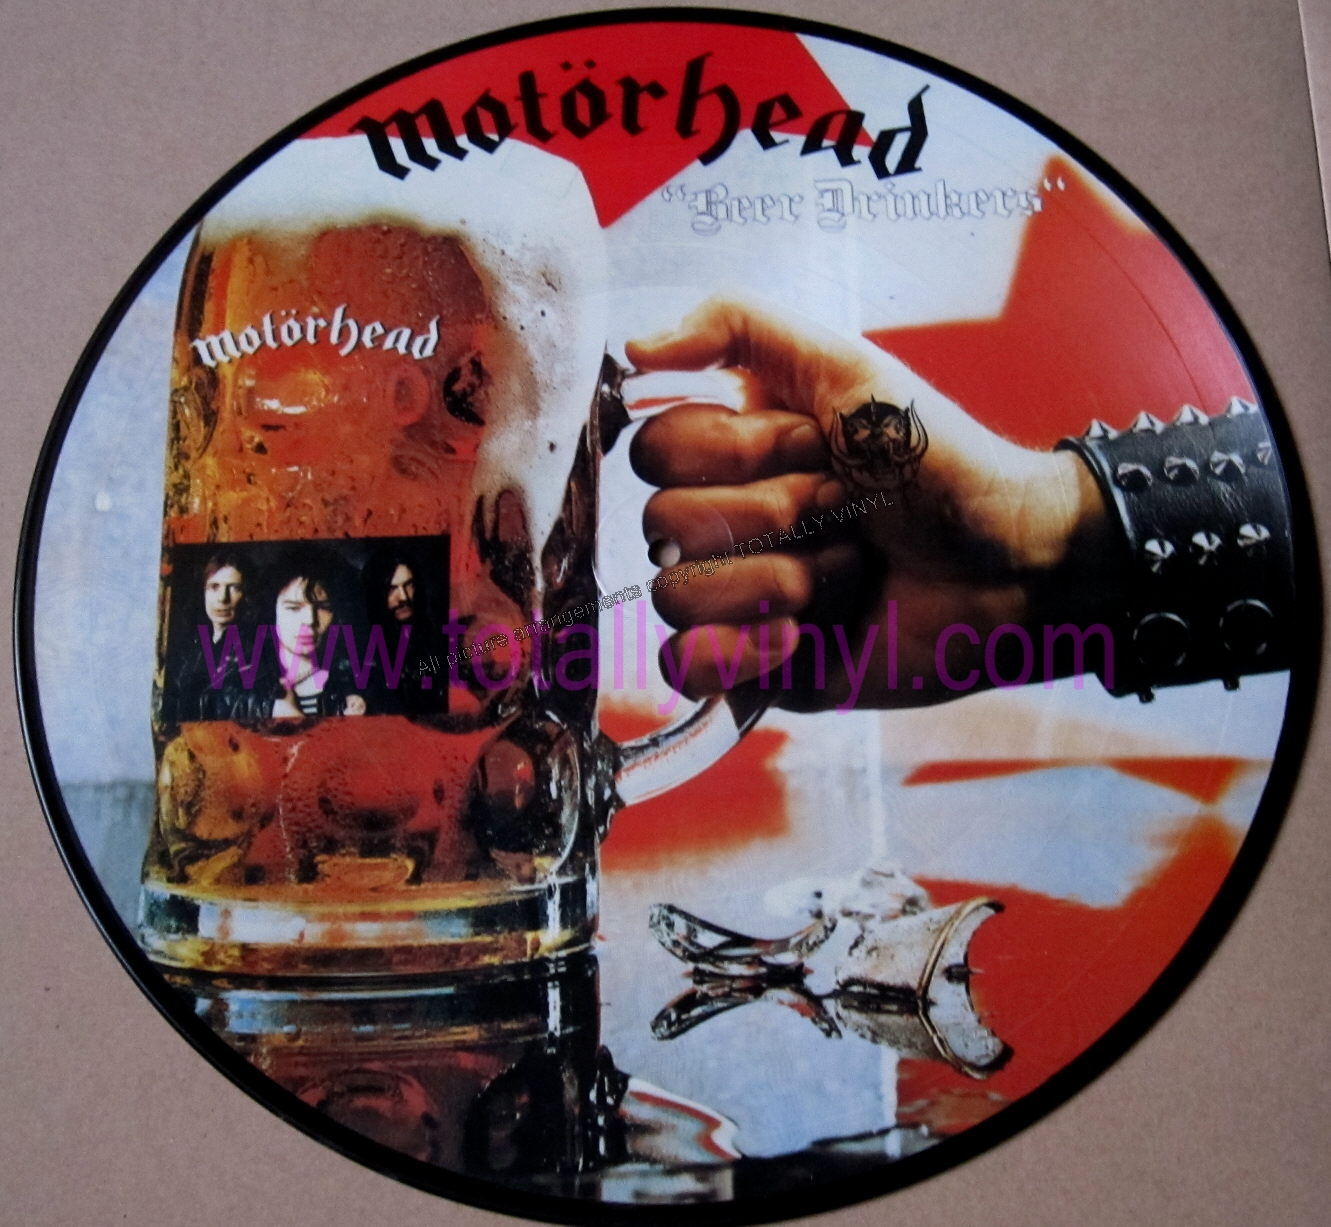 Totally Vinyl Records Motorhead Beer Drinkers Lp